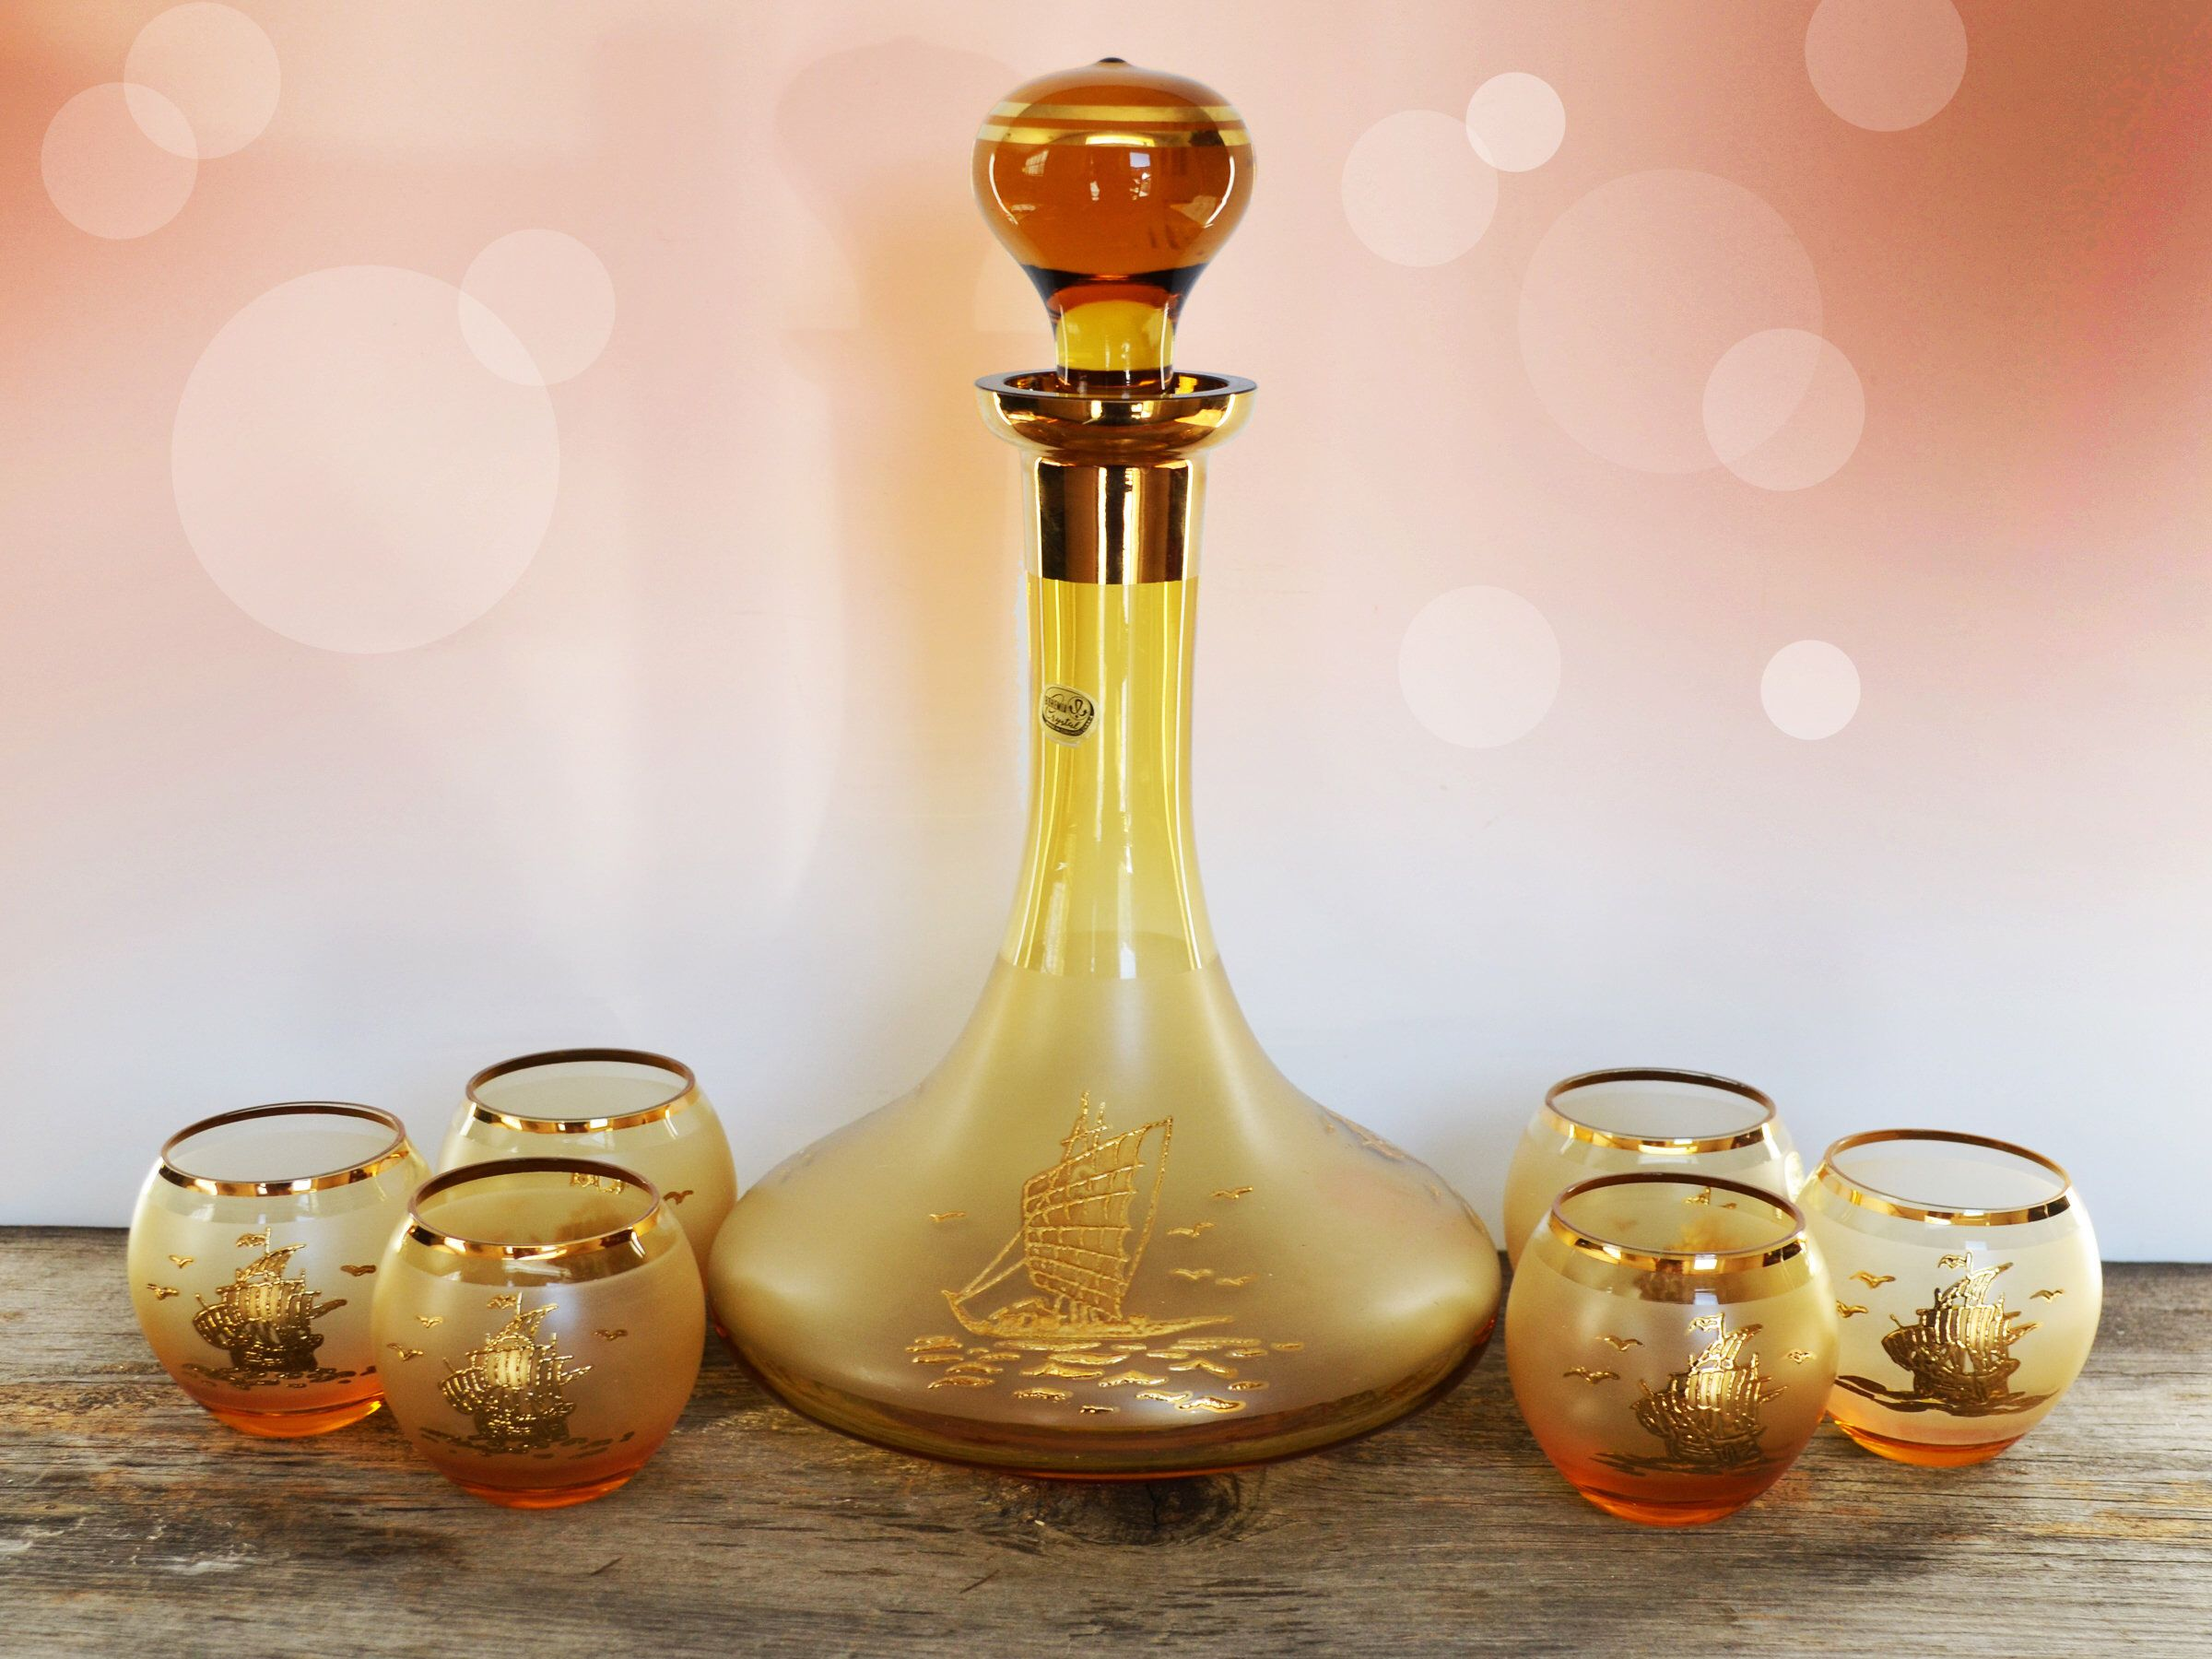 Vintage Amber Glass Decanter And Cognac Set Roly Poly Bohemian Glass Handblown Marine Nautical E Glass Decanter Set Hand Blown Glass Decanter Glass Decanter